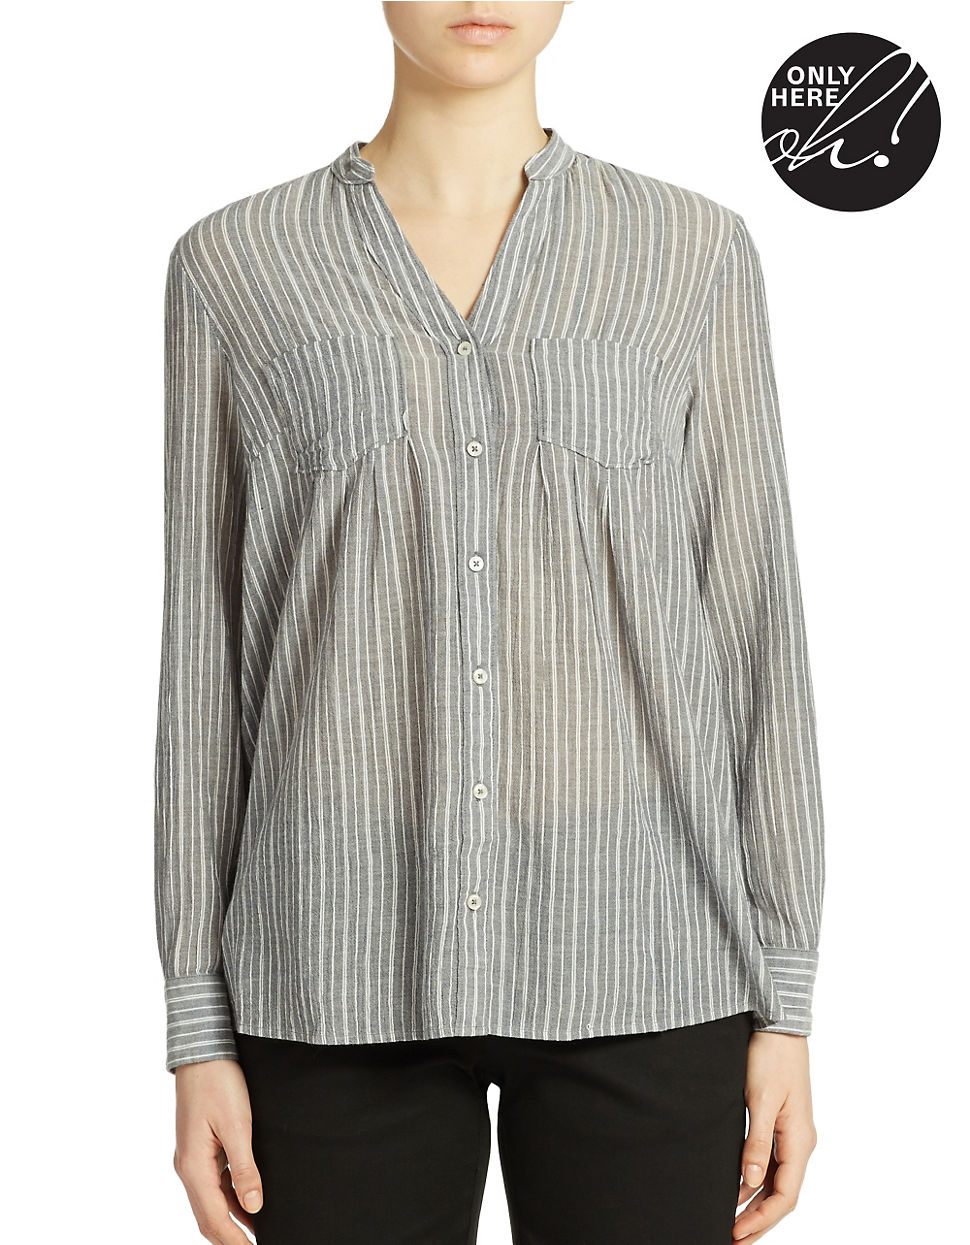 Lord Taylor Striped Cotton Shirt In Blue Lyst